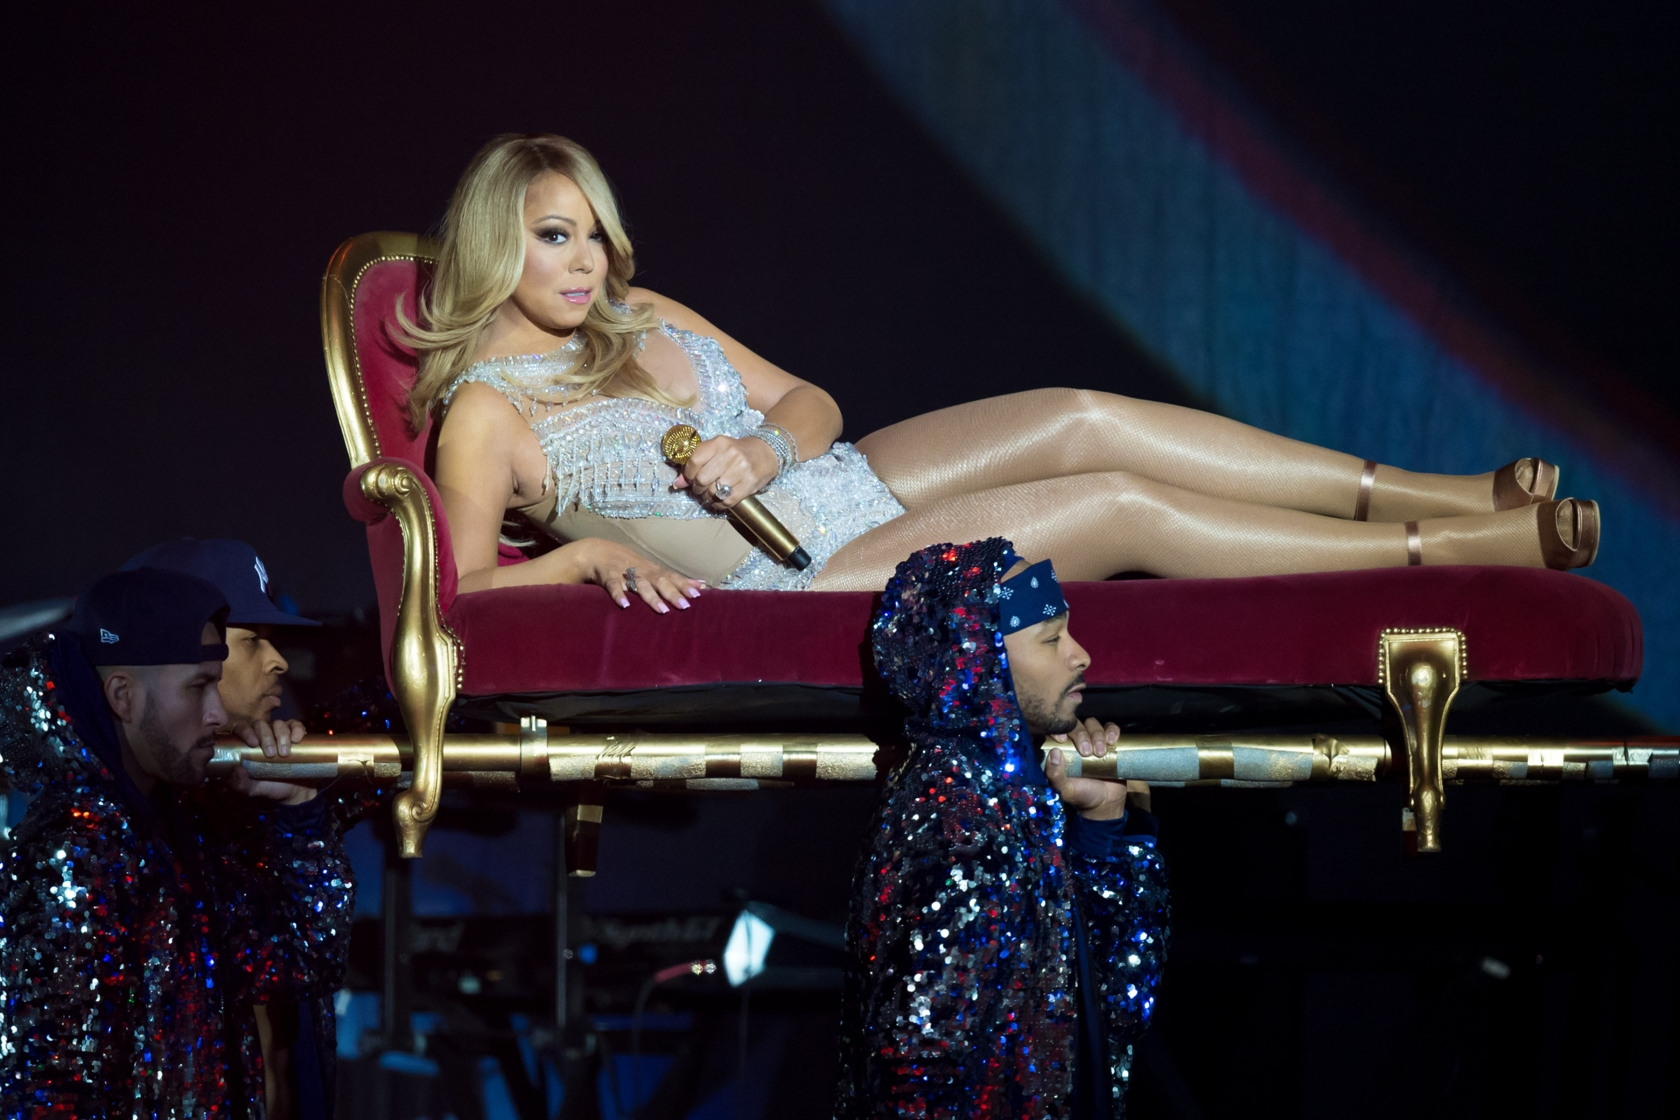 Mariah Carey Performs At The O2 Arena In London